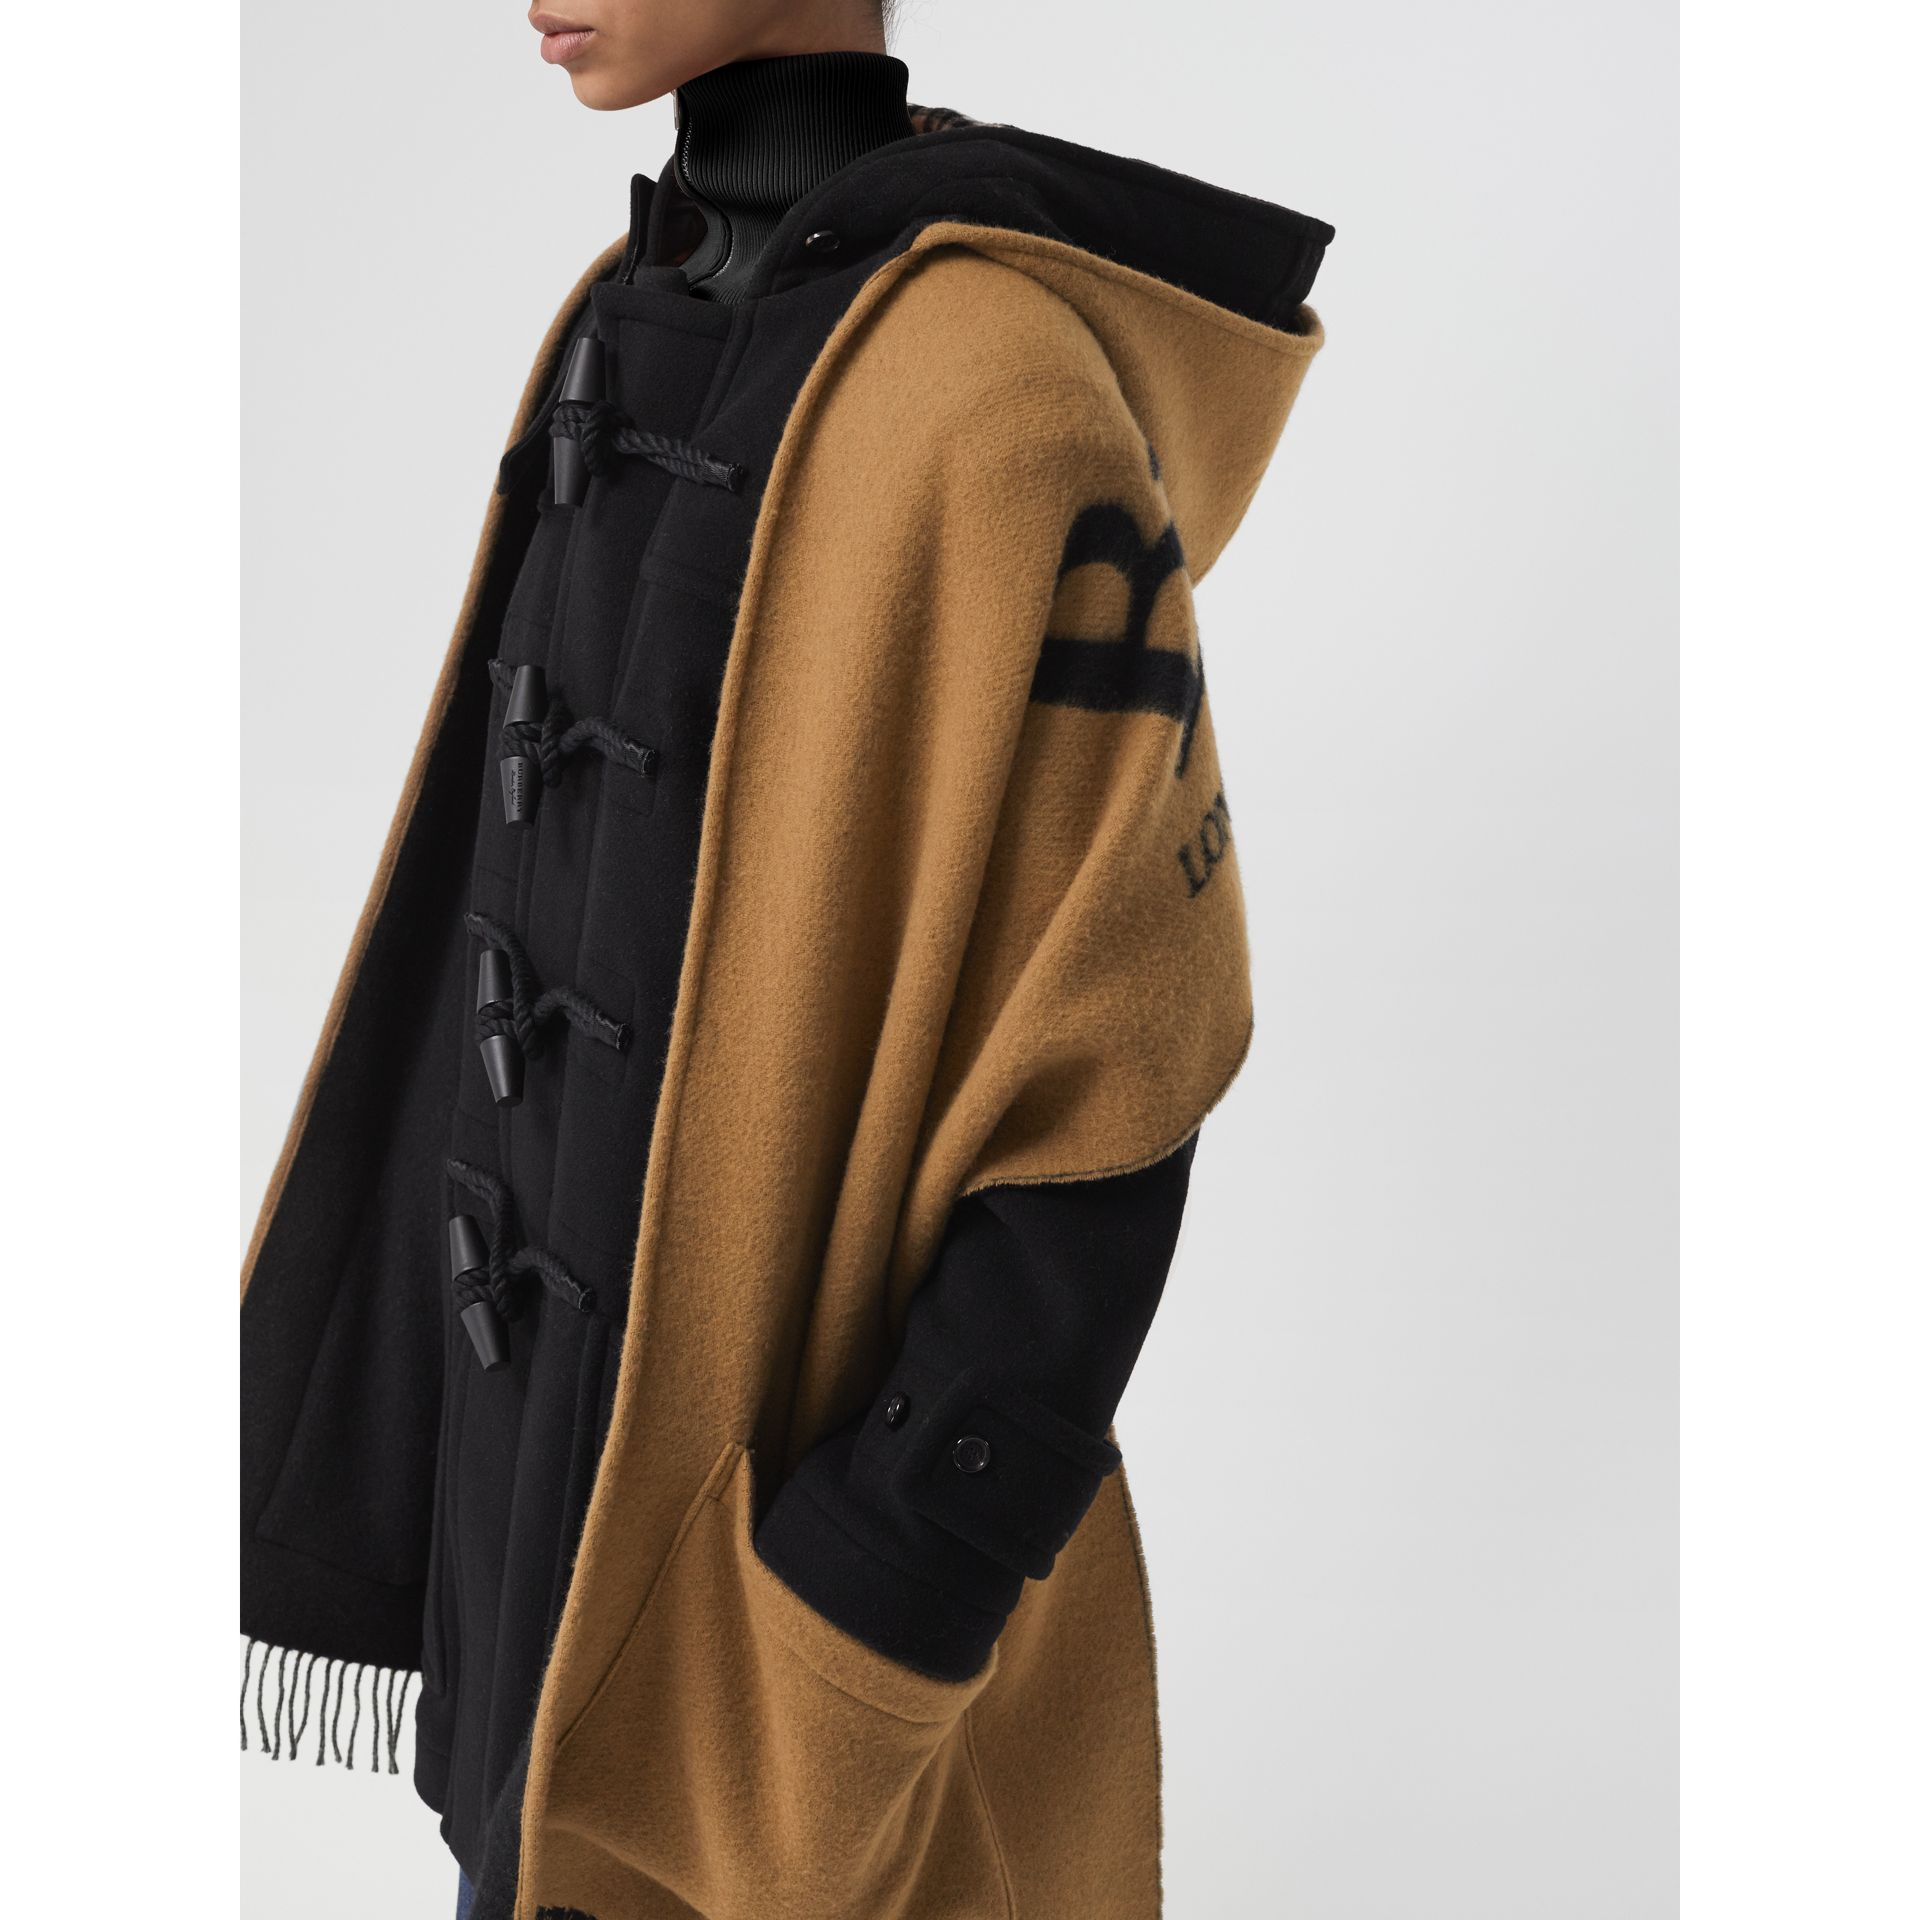 Wool Blend Duffle Coat in Black - Women | Burberry Australia - gallery image 1